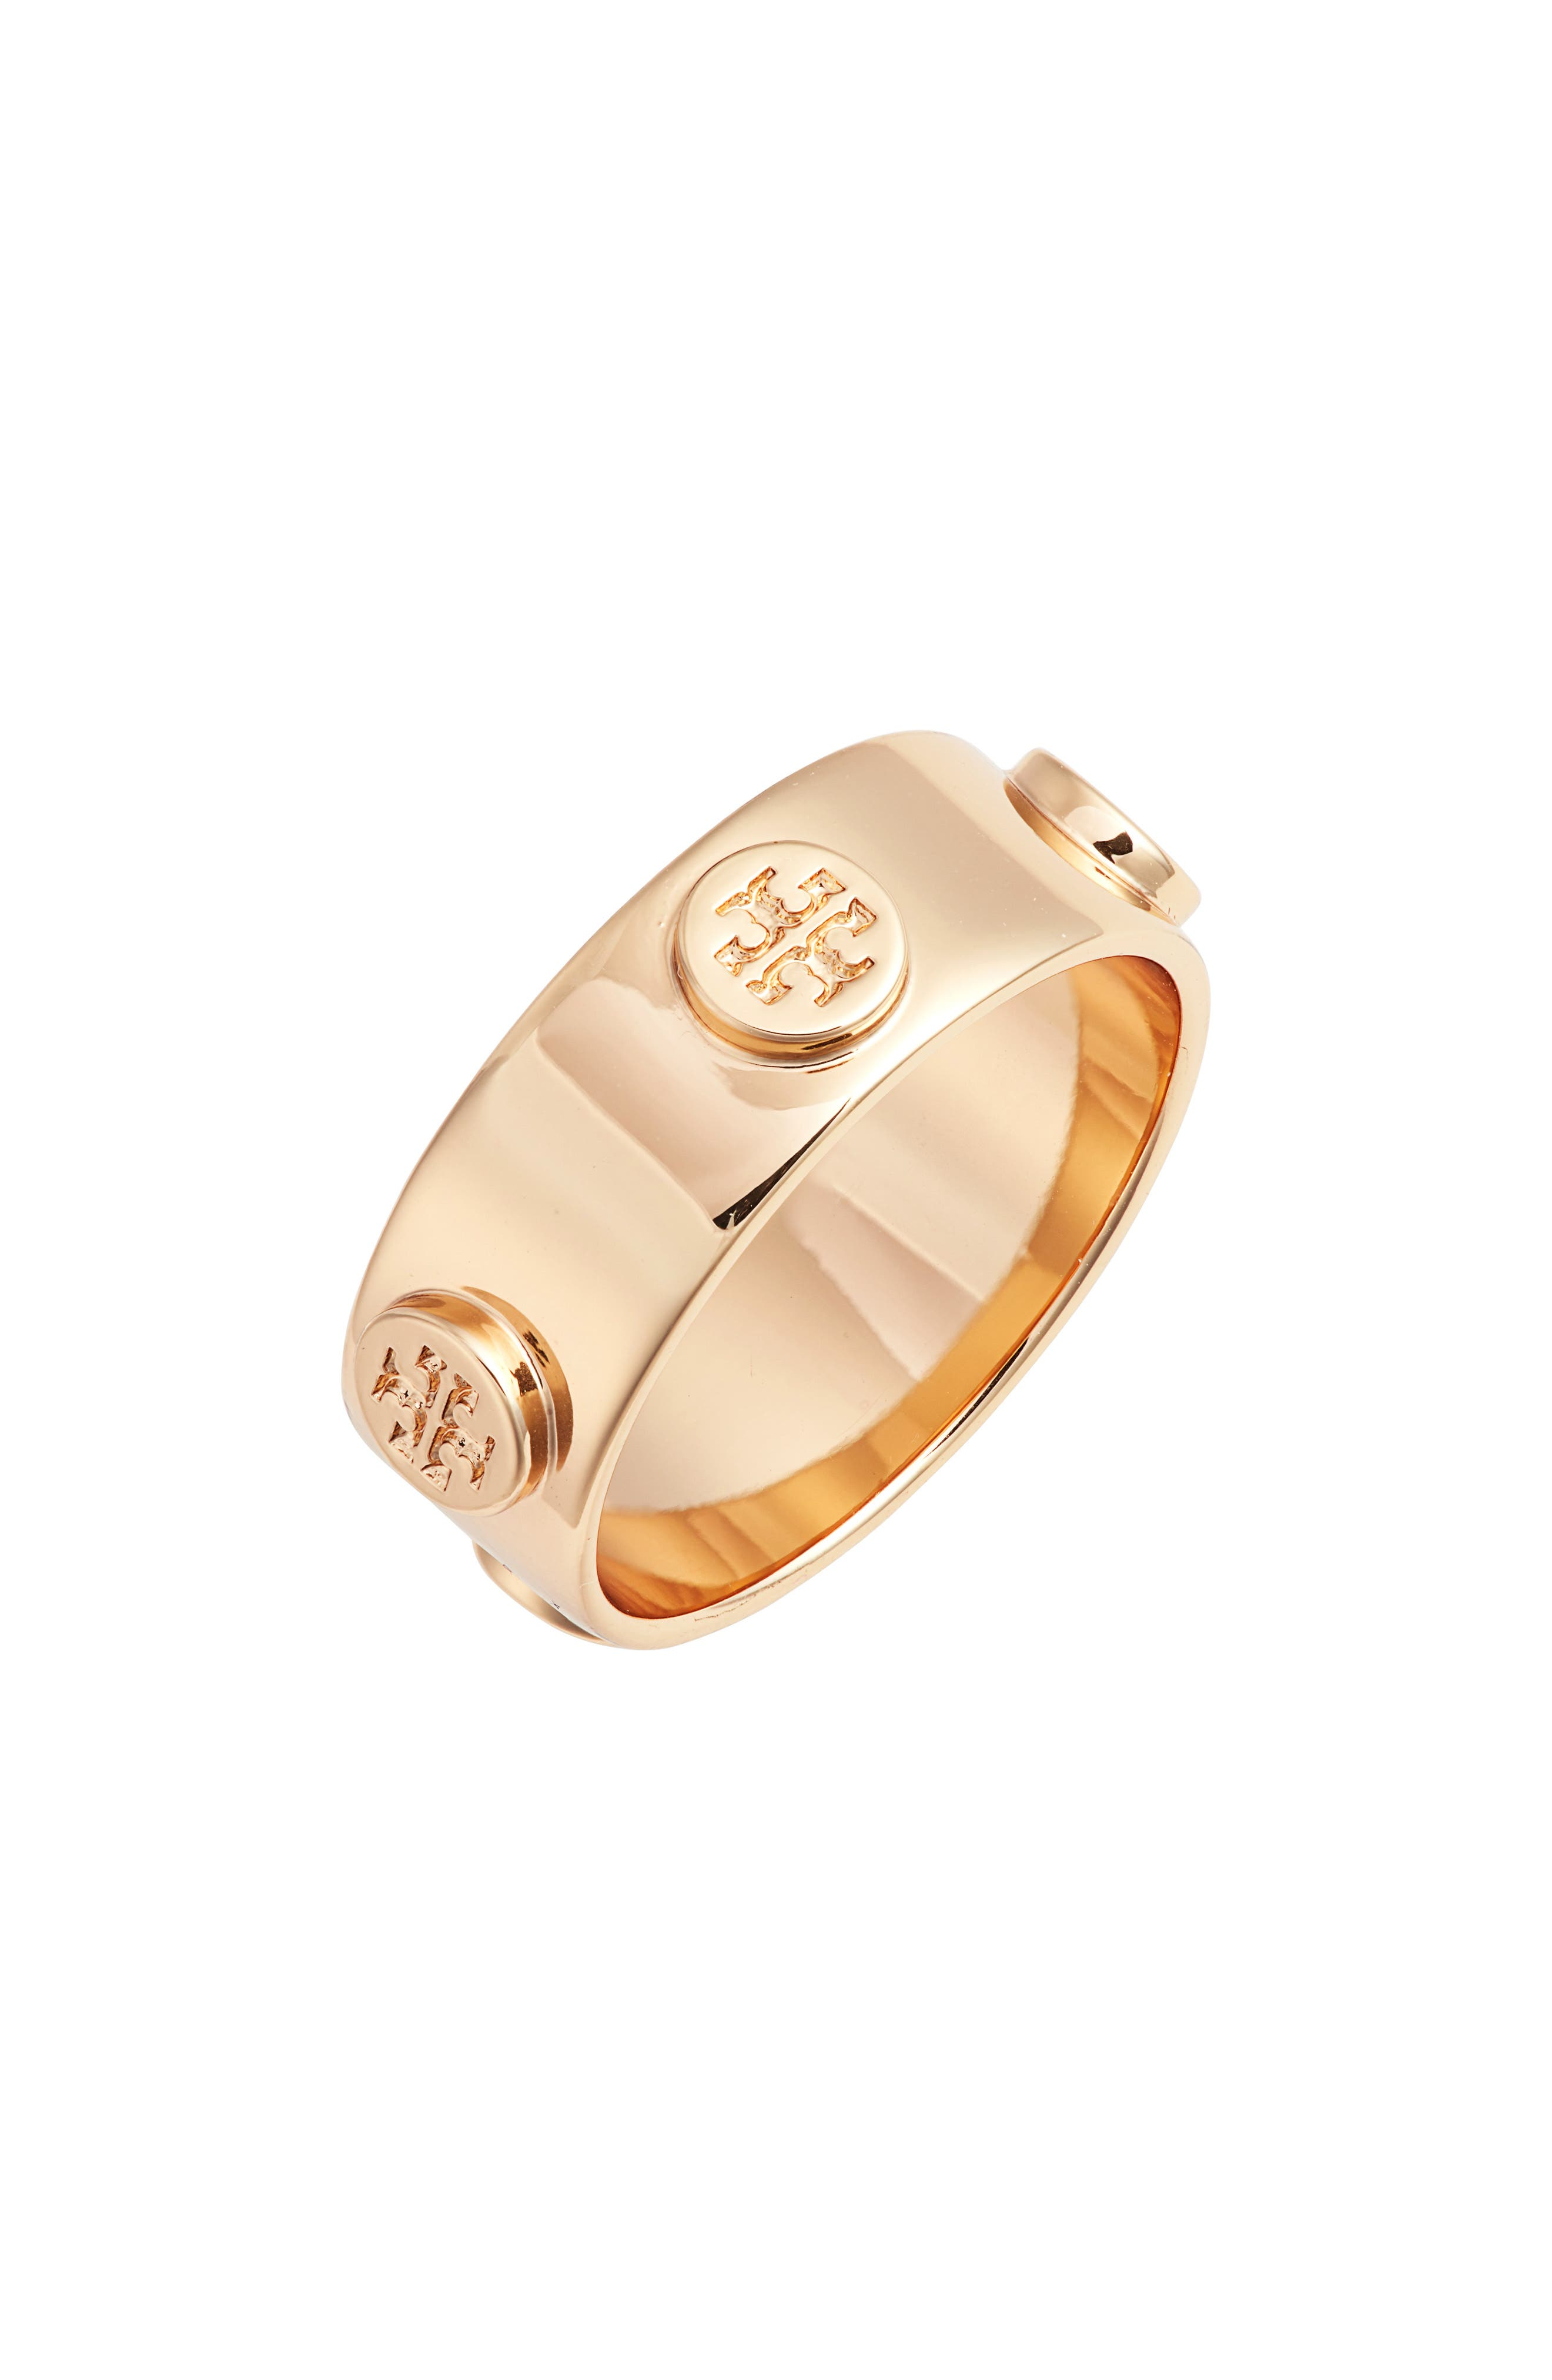 TORY BURCH Delicate Logo Ring, Main, color, TORY GOLD